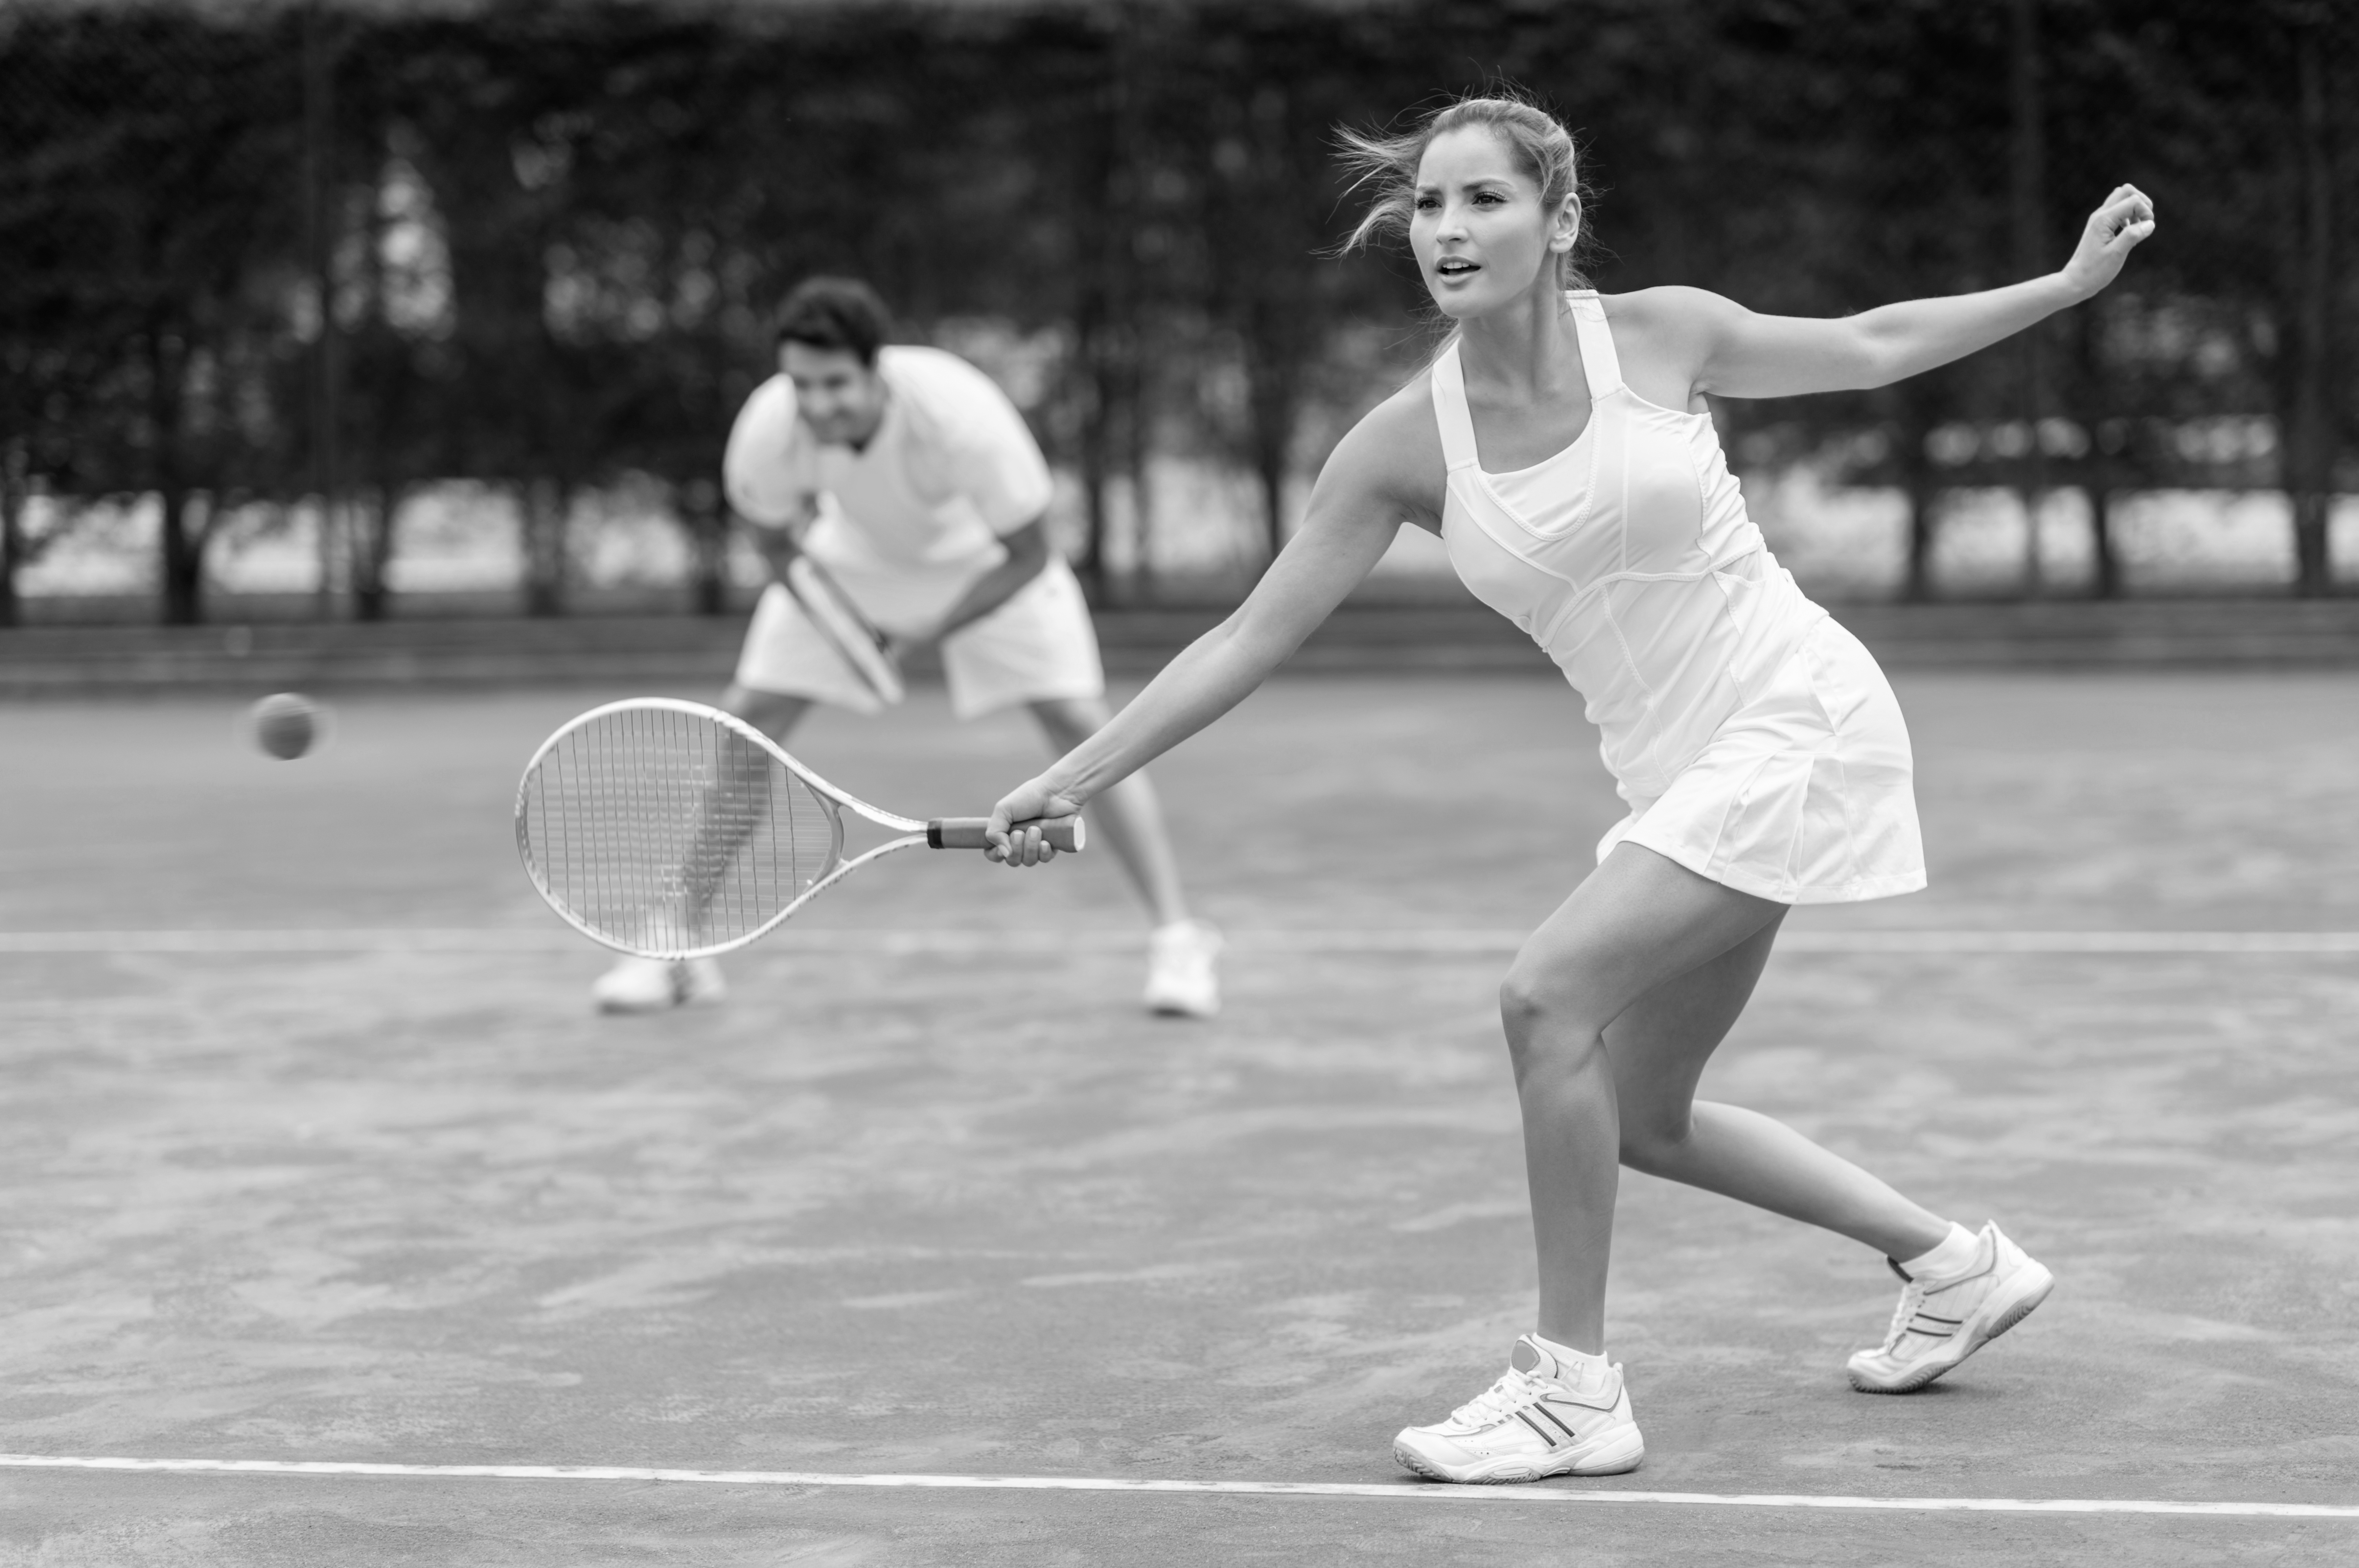 woman hitting a tennis ball with teammate standing behind her